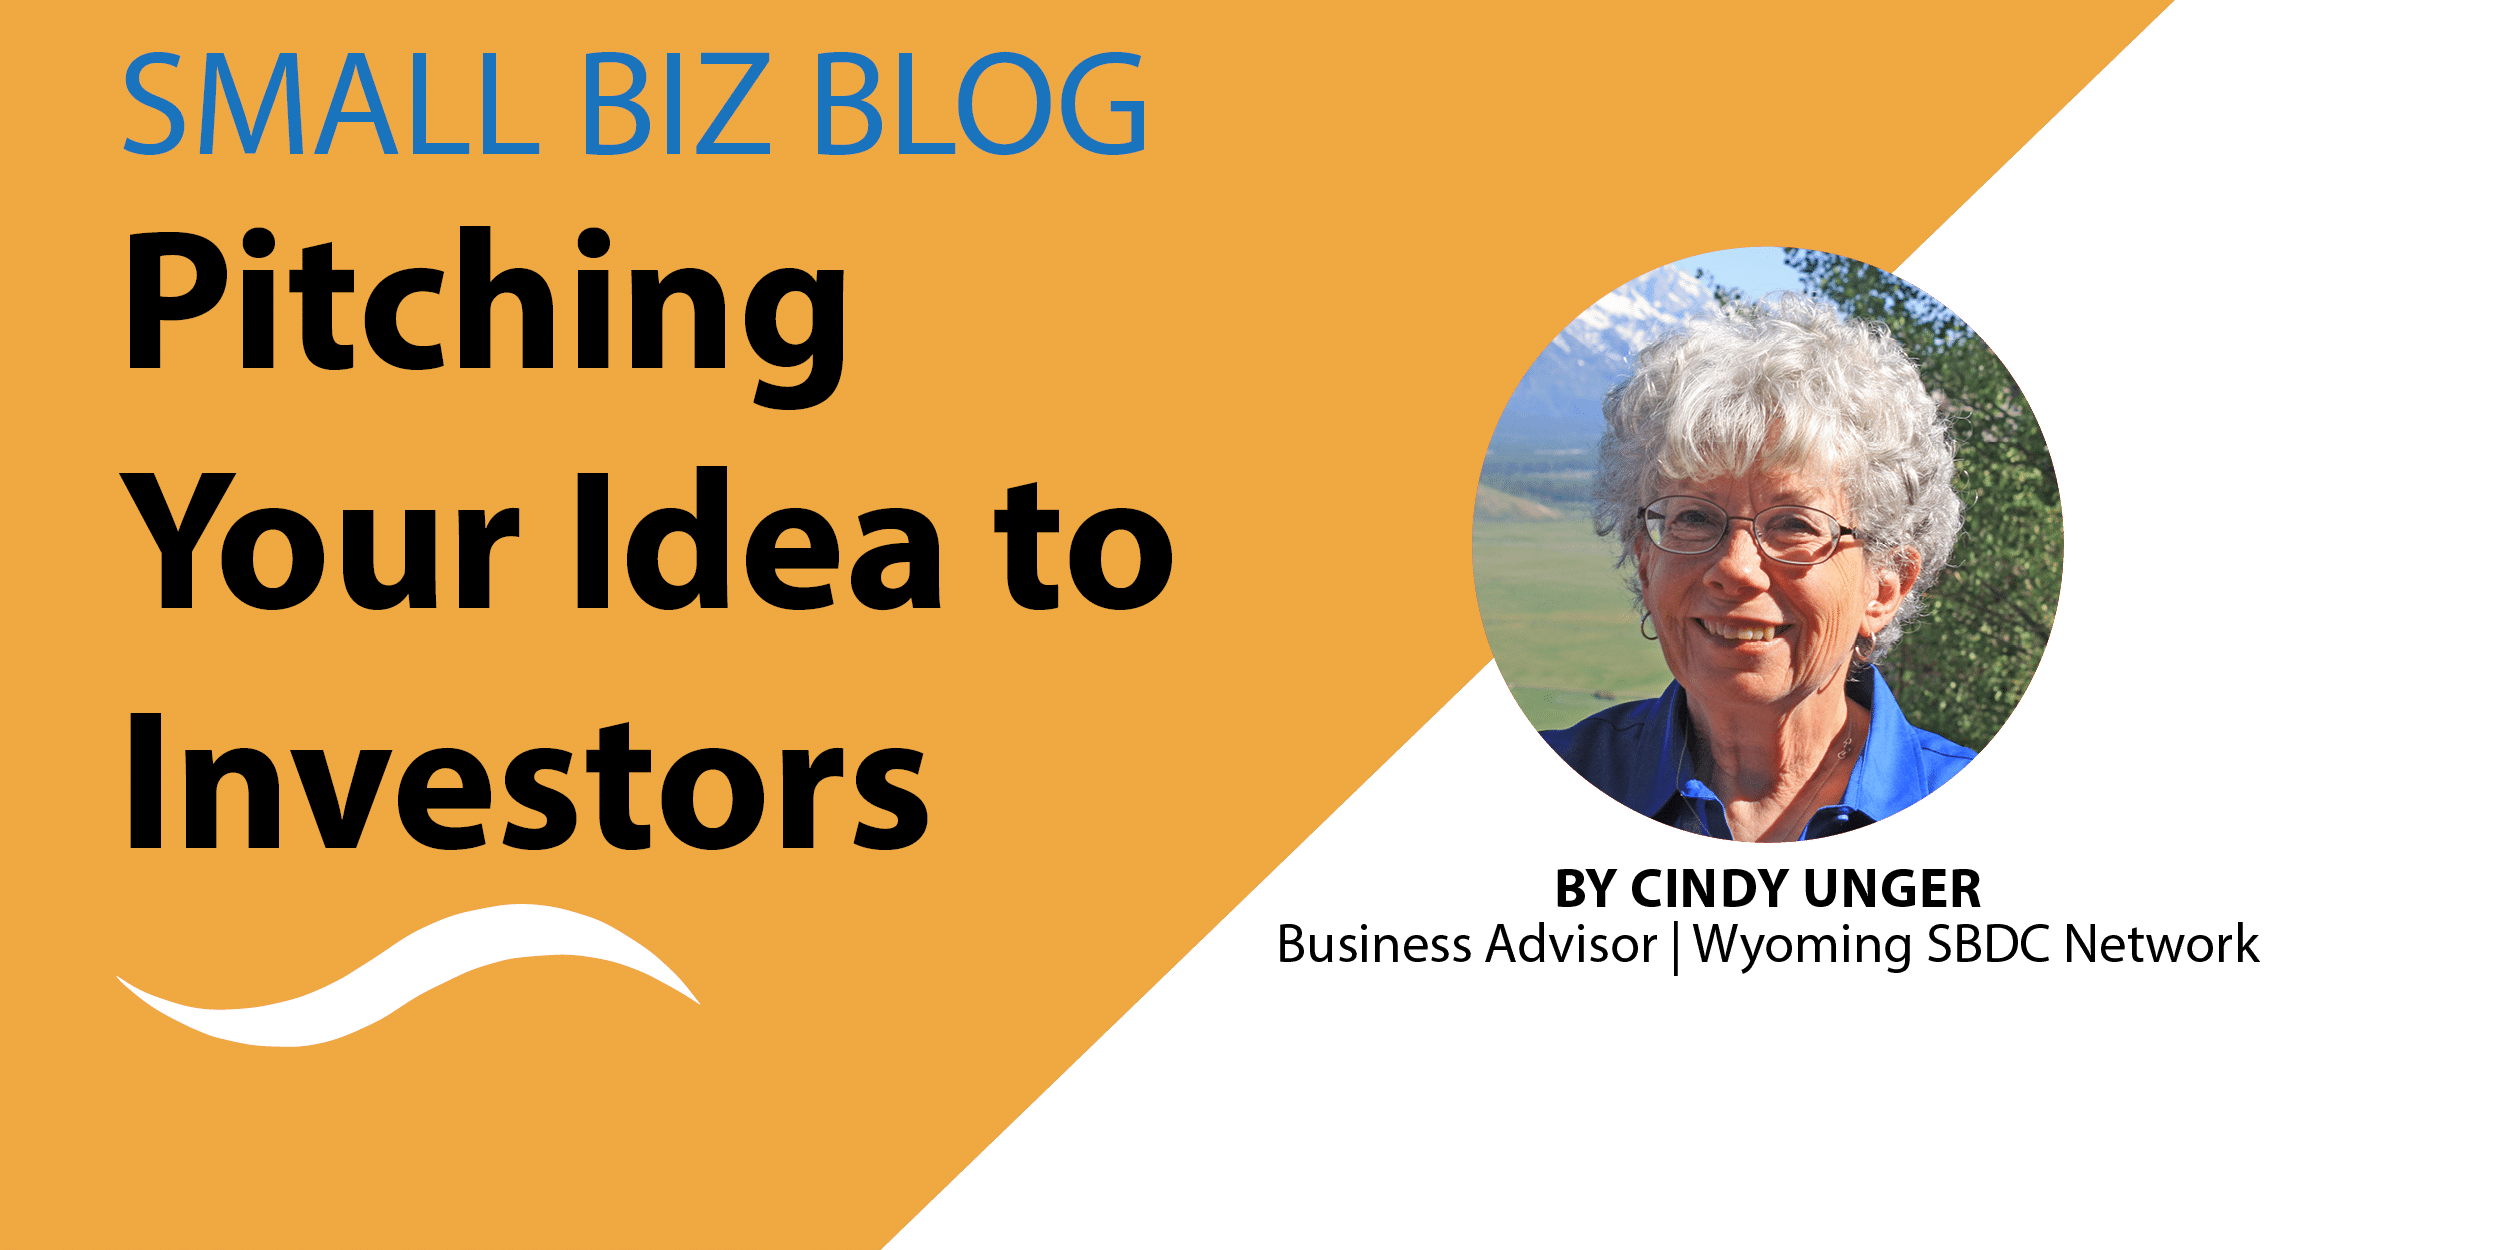 How to pitch an idea to potential investors